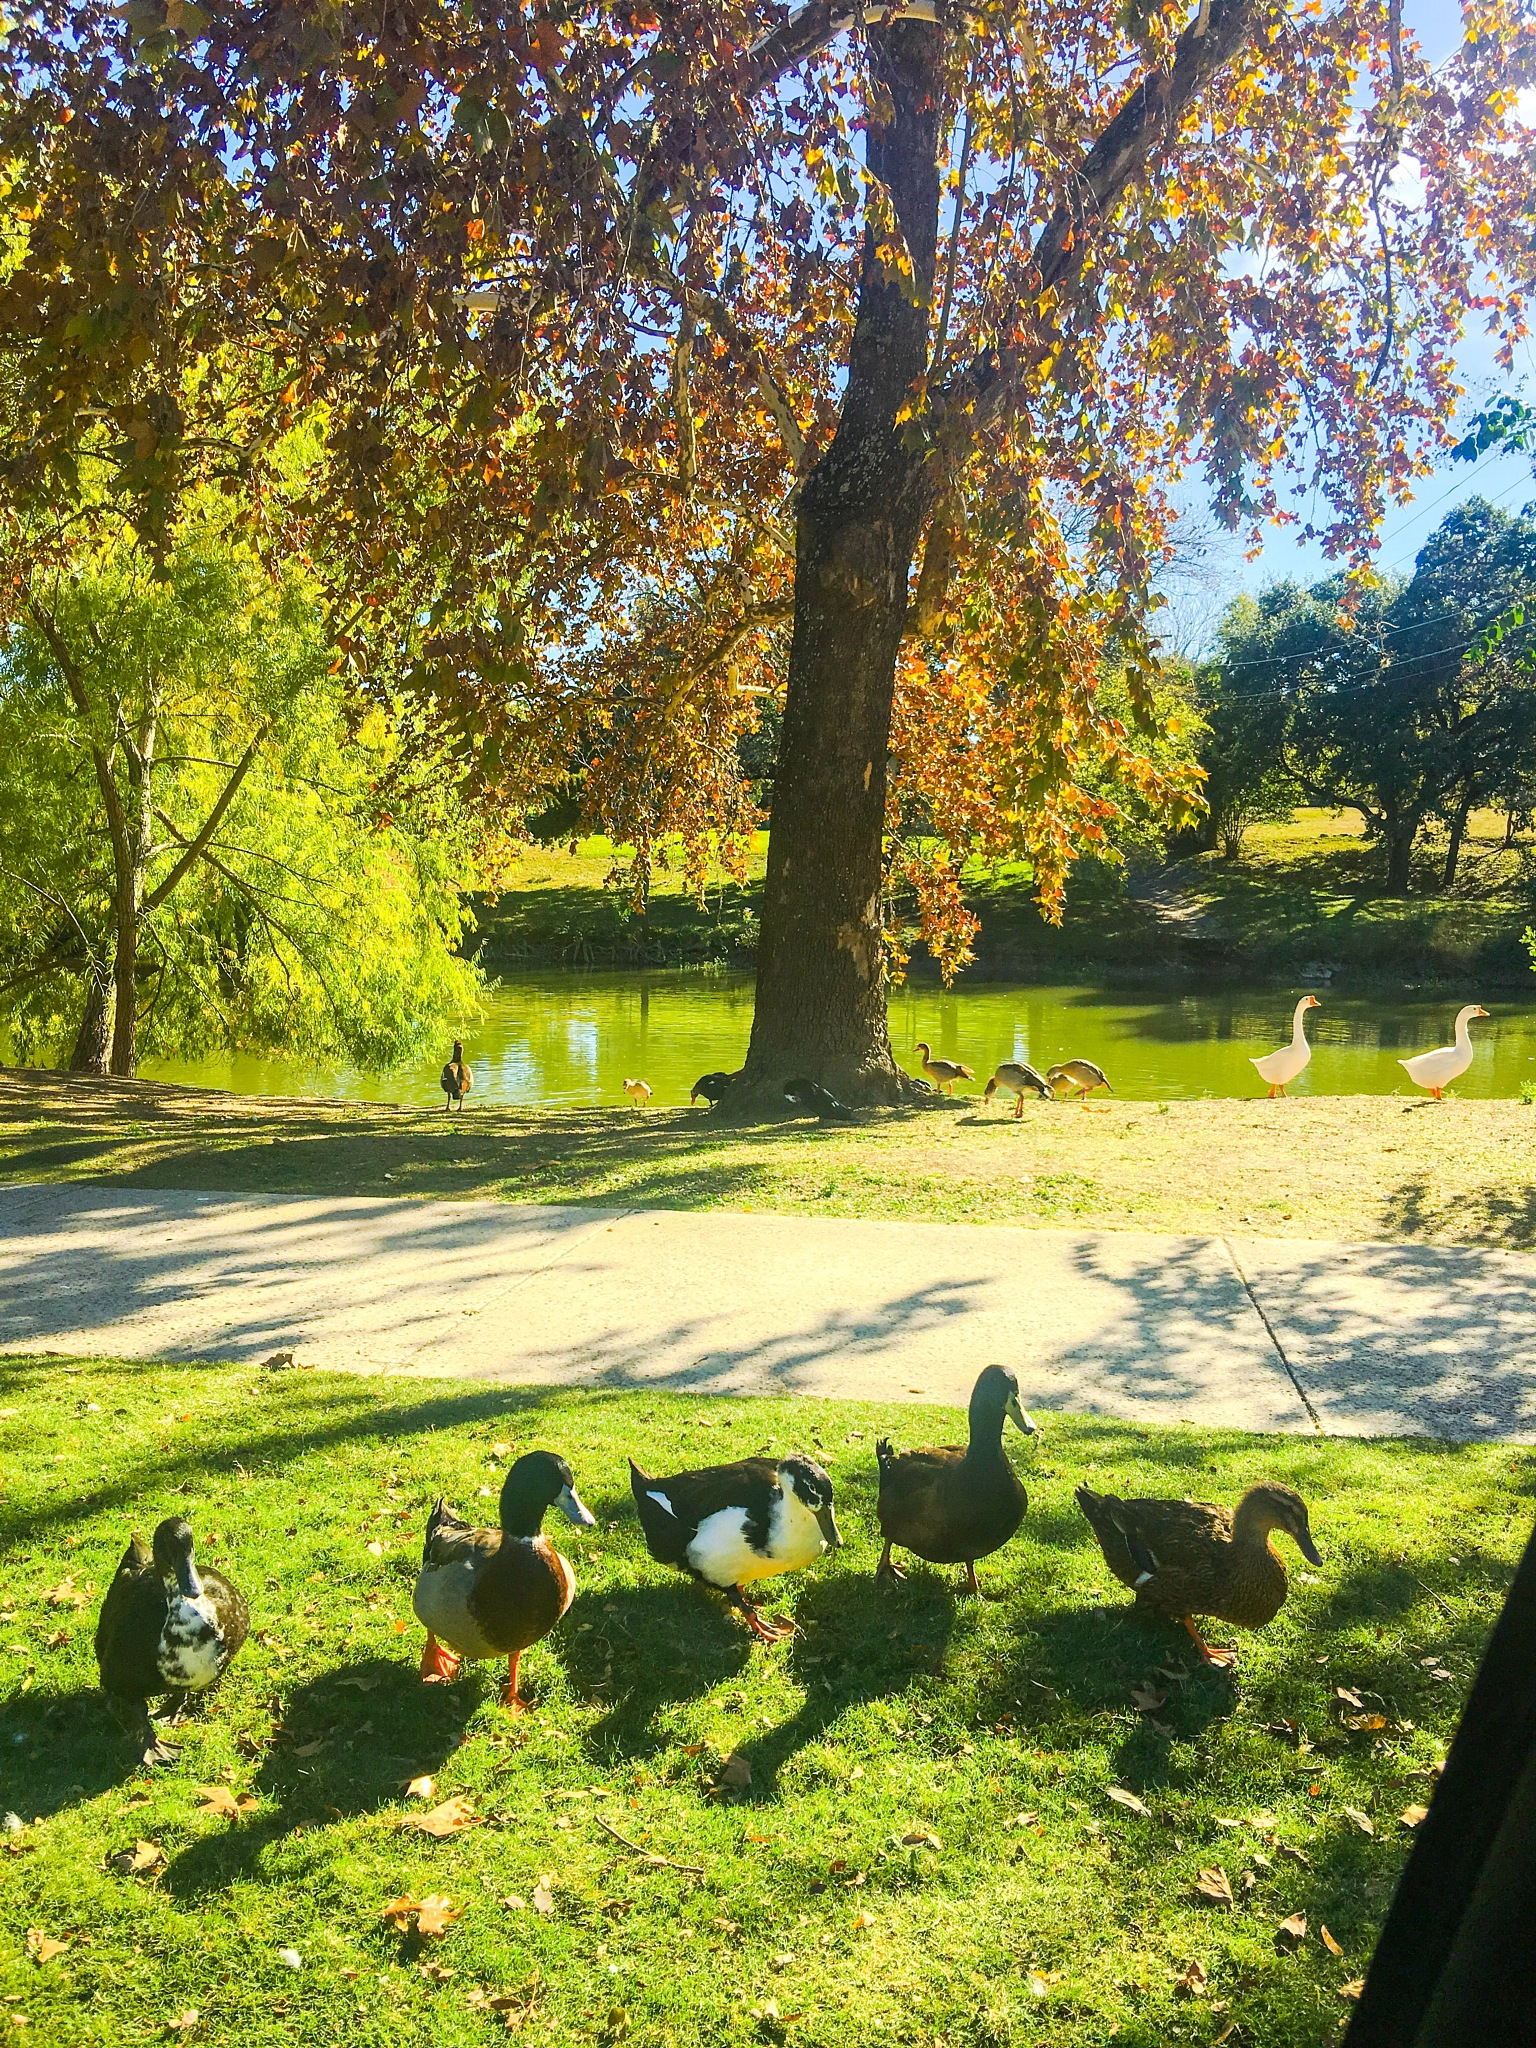 Ducks at the River by Deanna Dahl Wefel